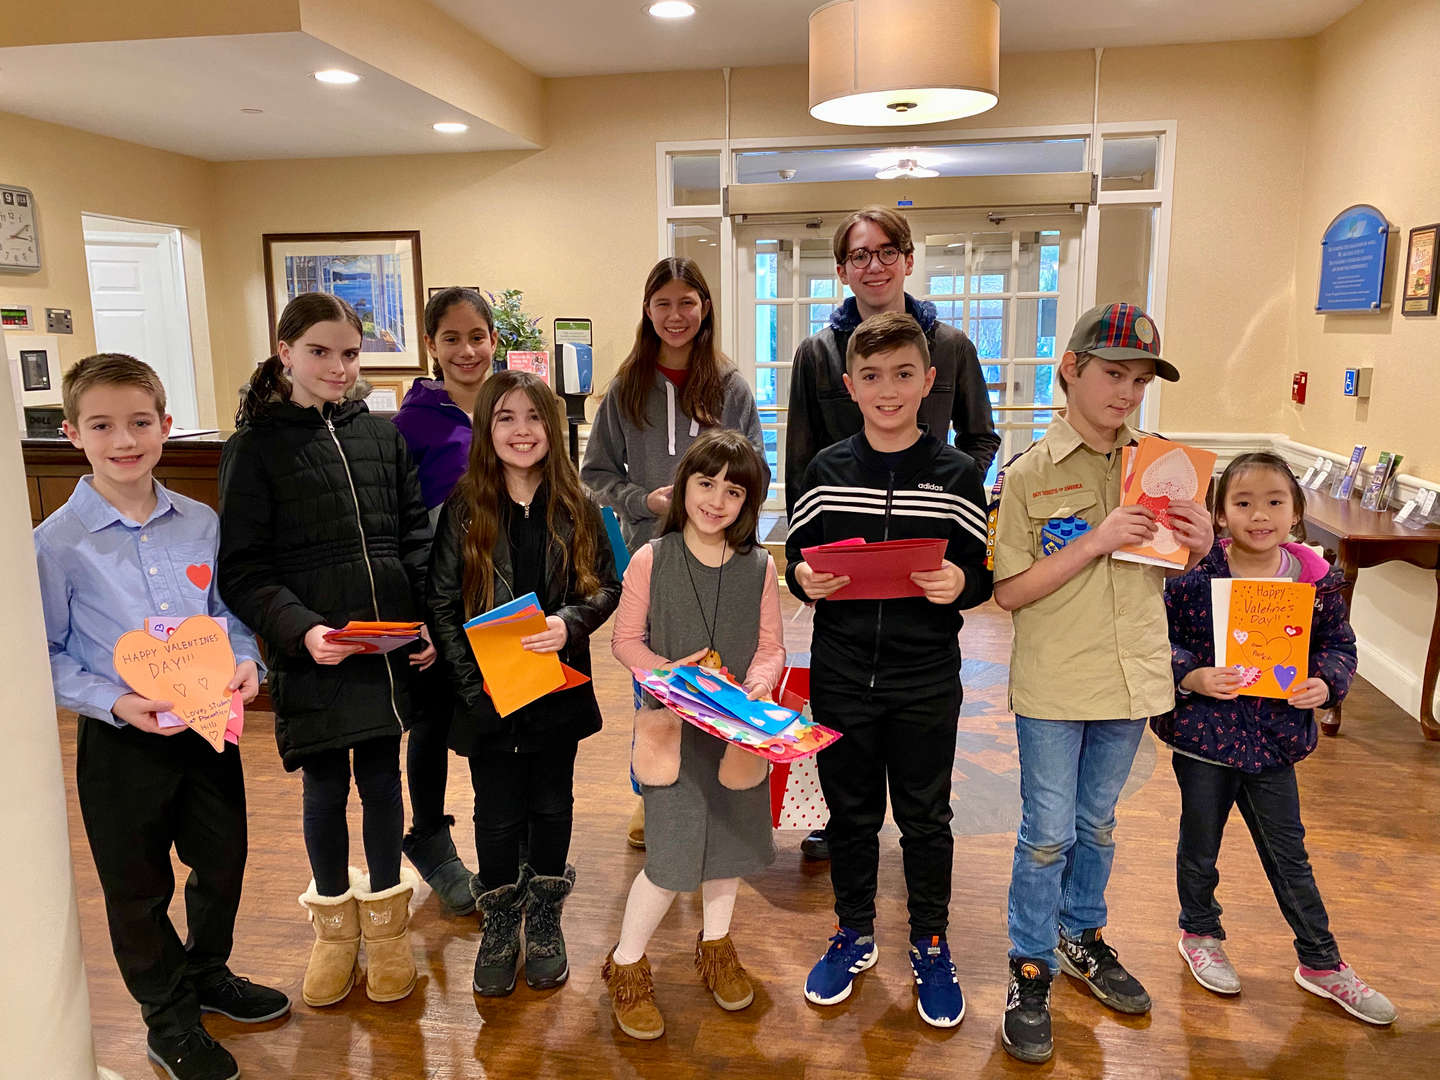 A group of students delivered Valentine's Day cards to a senior home.